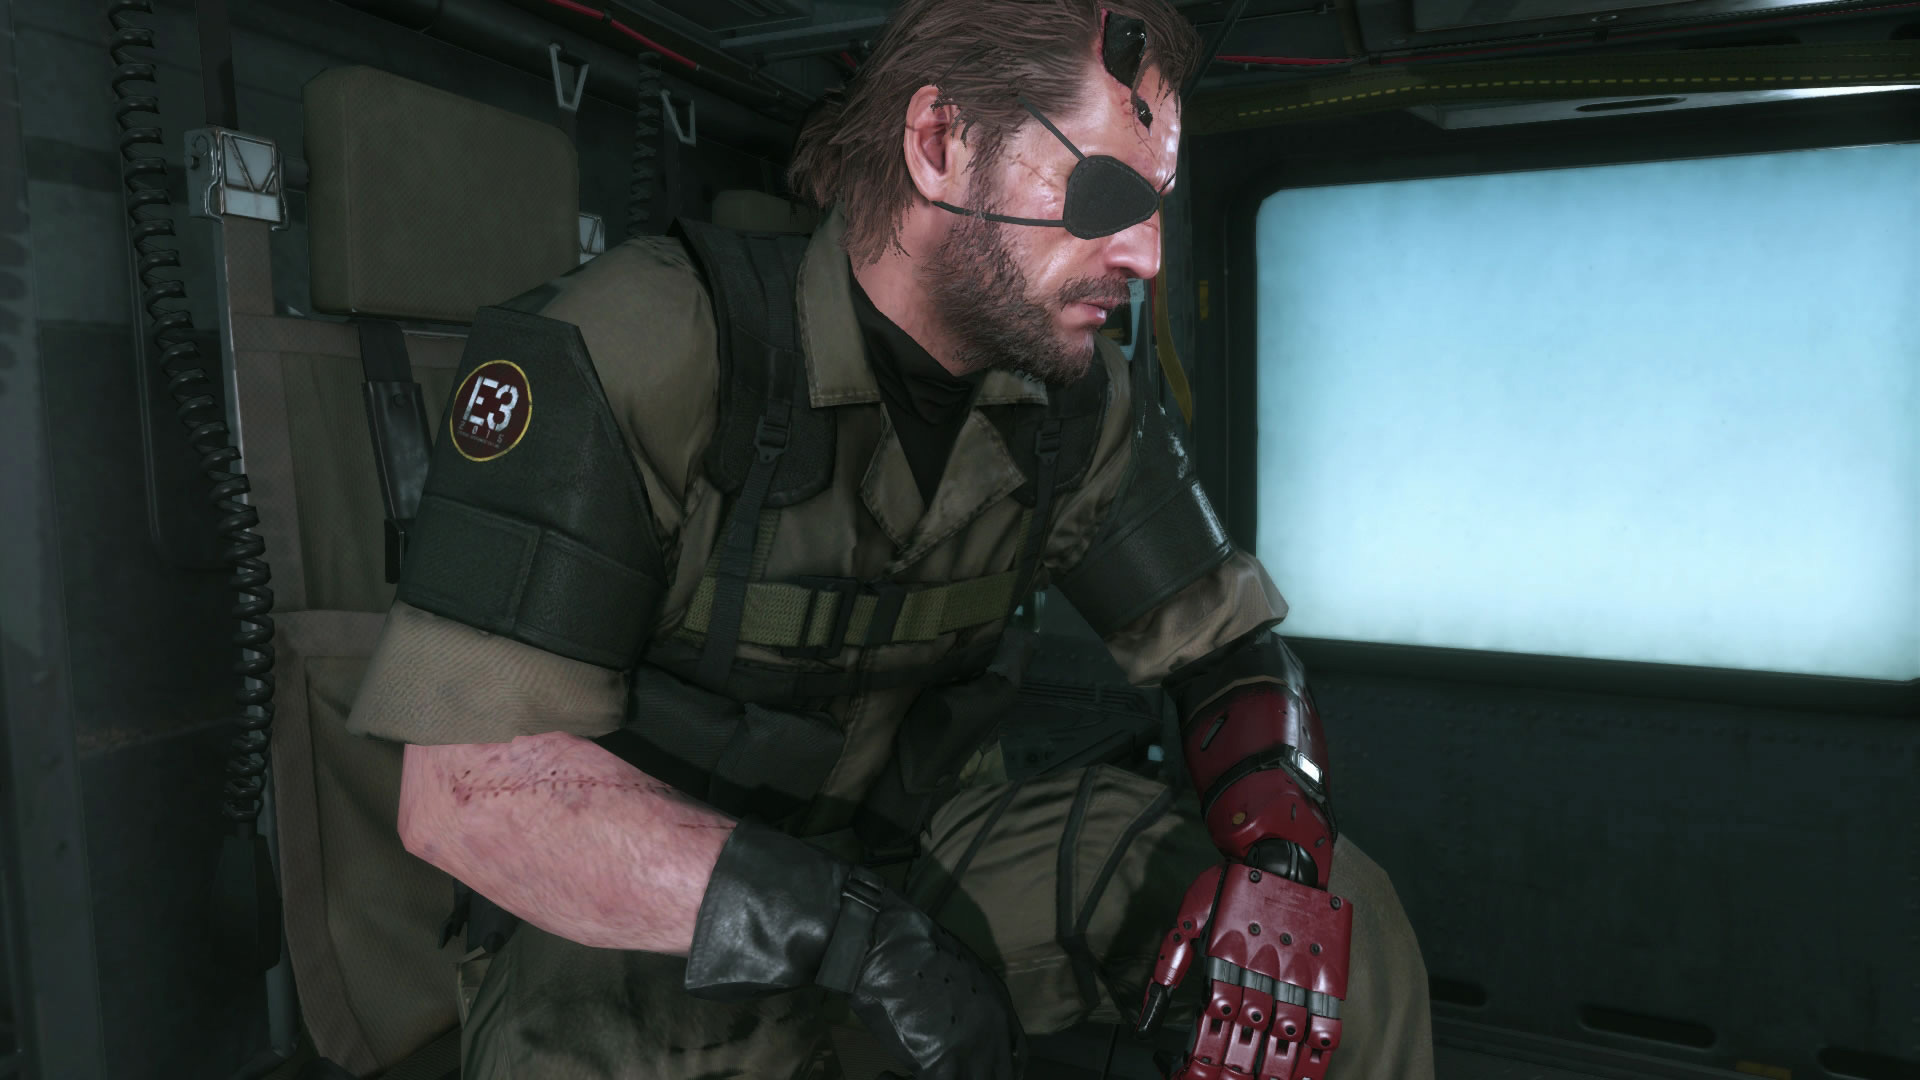 Metal-Gear-Solid-V-The-Phantom-Pain-E3-2015-Screen-Big-Boss-Emblem